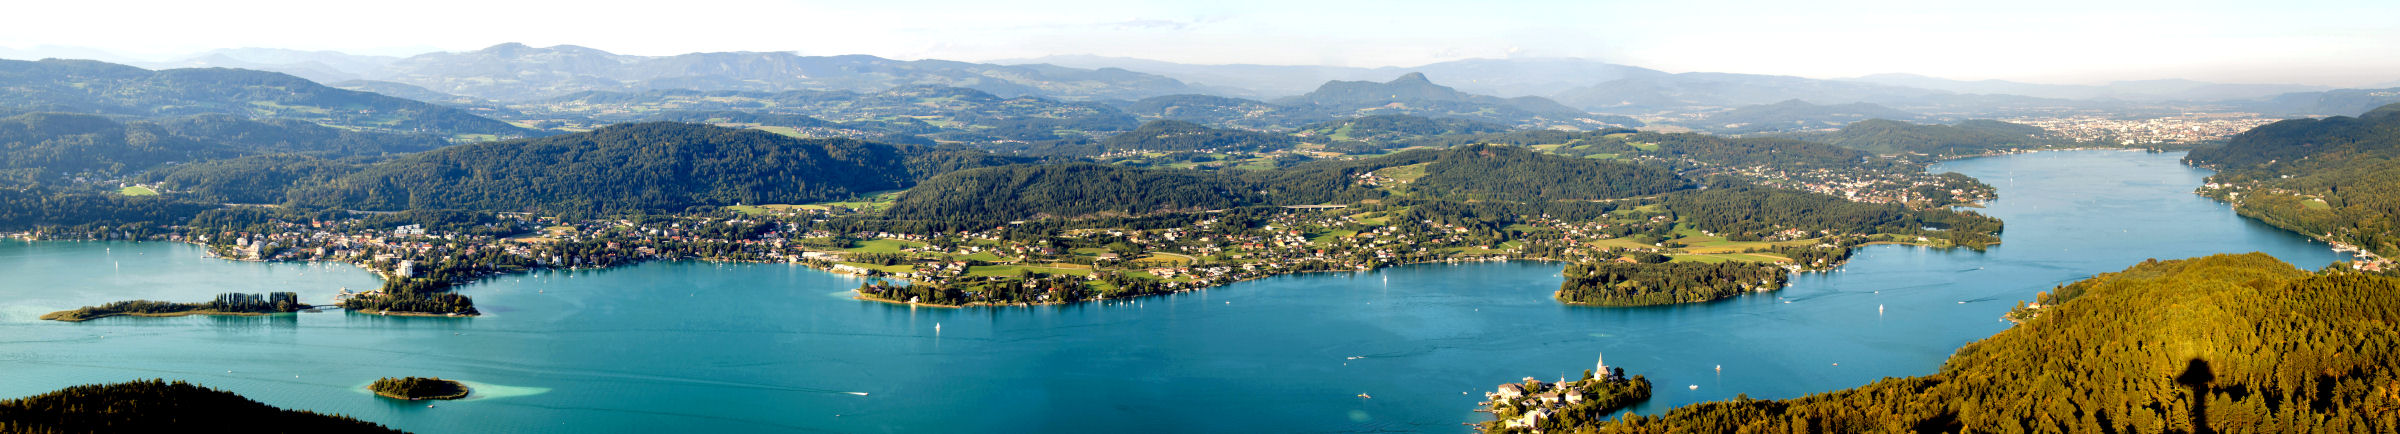 lake-woerthersee-klagenfurt-panorama